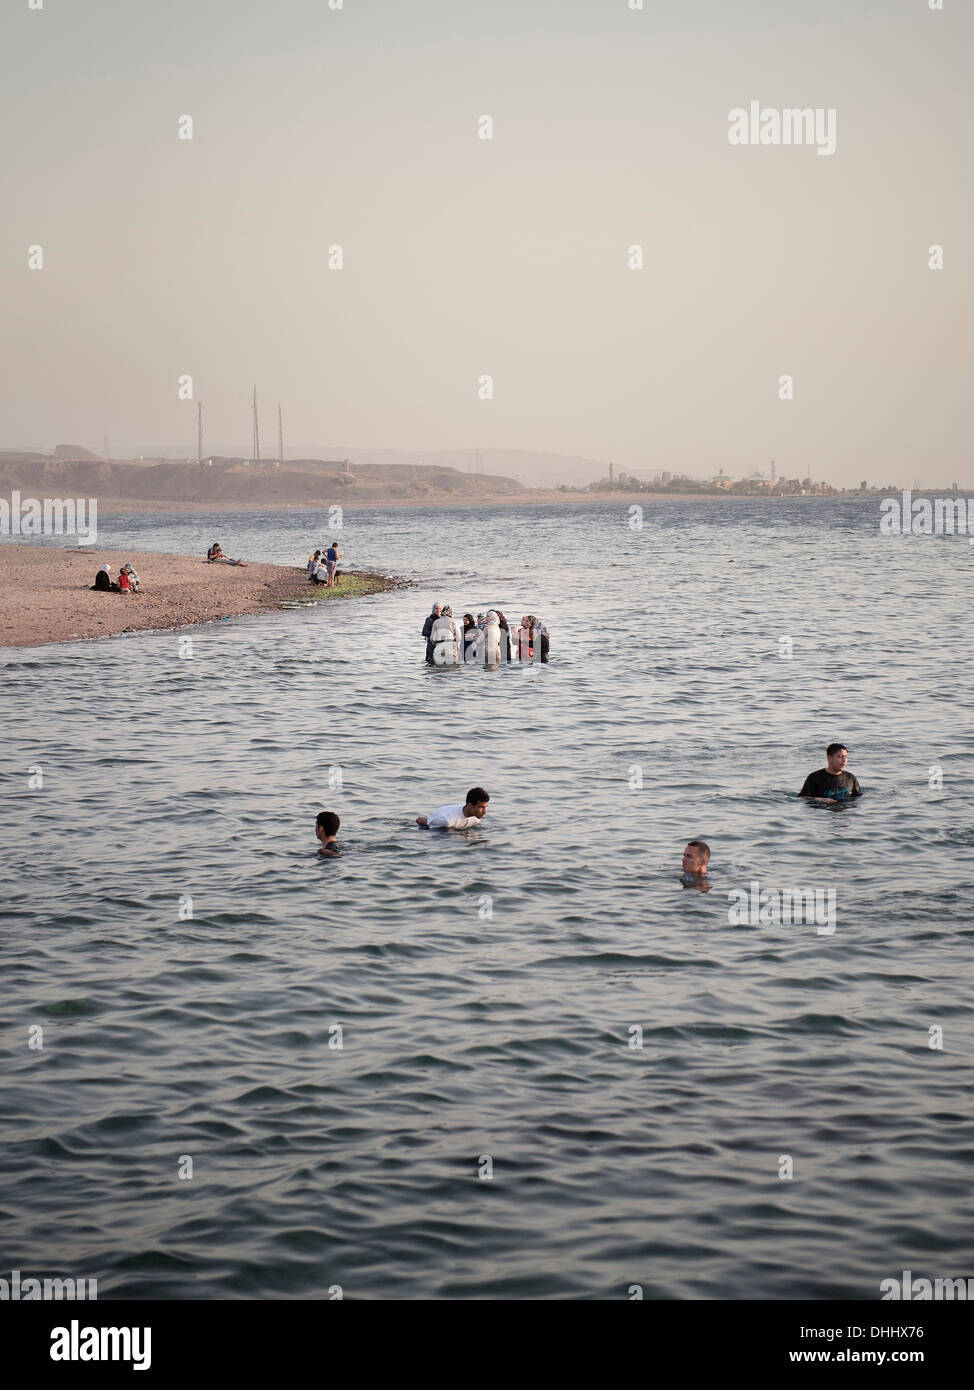 Group of muslim women and families bathing, Gulf of Aqaba, Red Sea, Jordan, Middle East, Asia - Stock Image